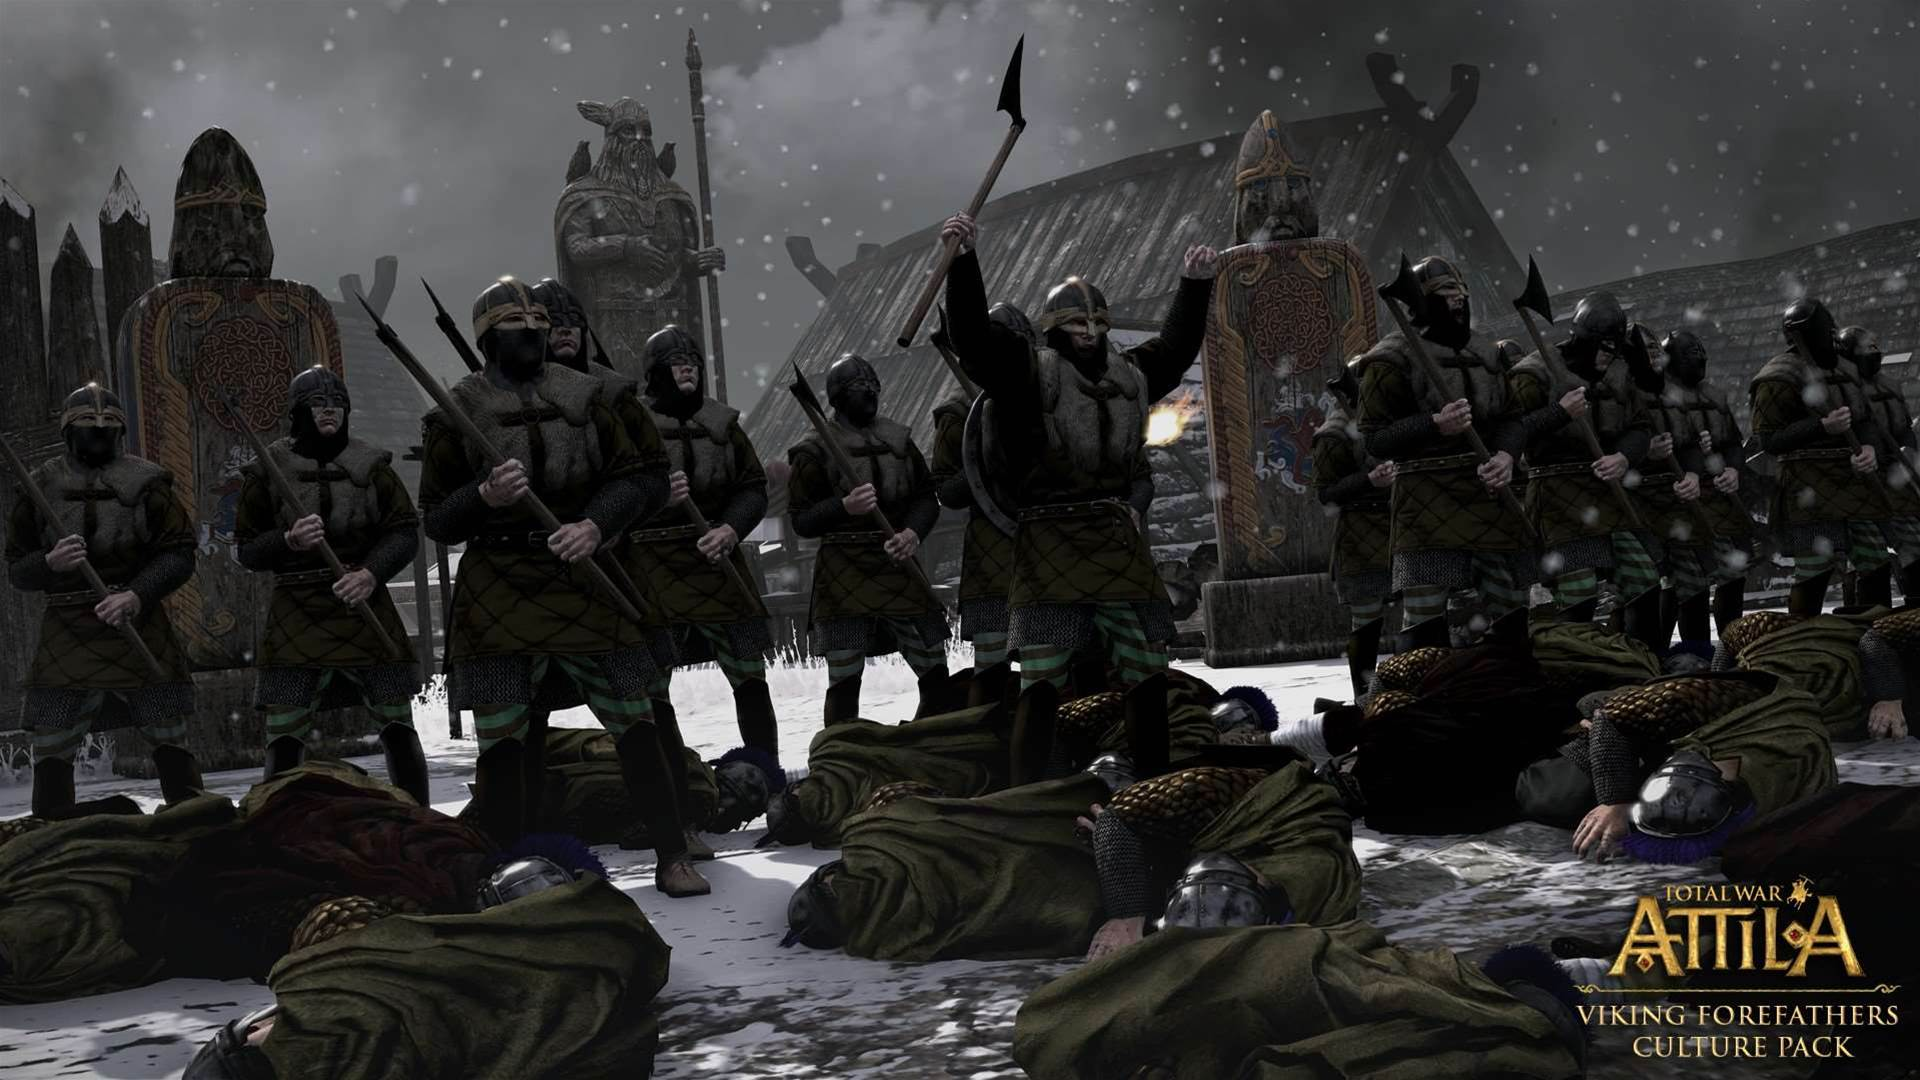 Get an early look at the Viking Forefathers Culture pack for Total War: Attila